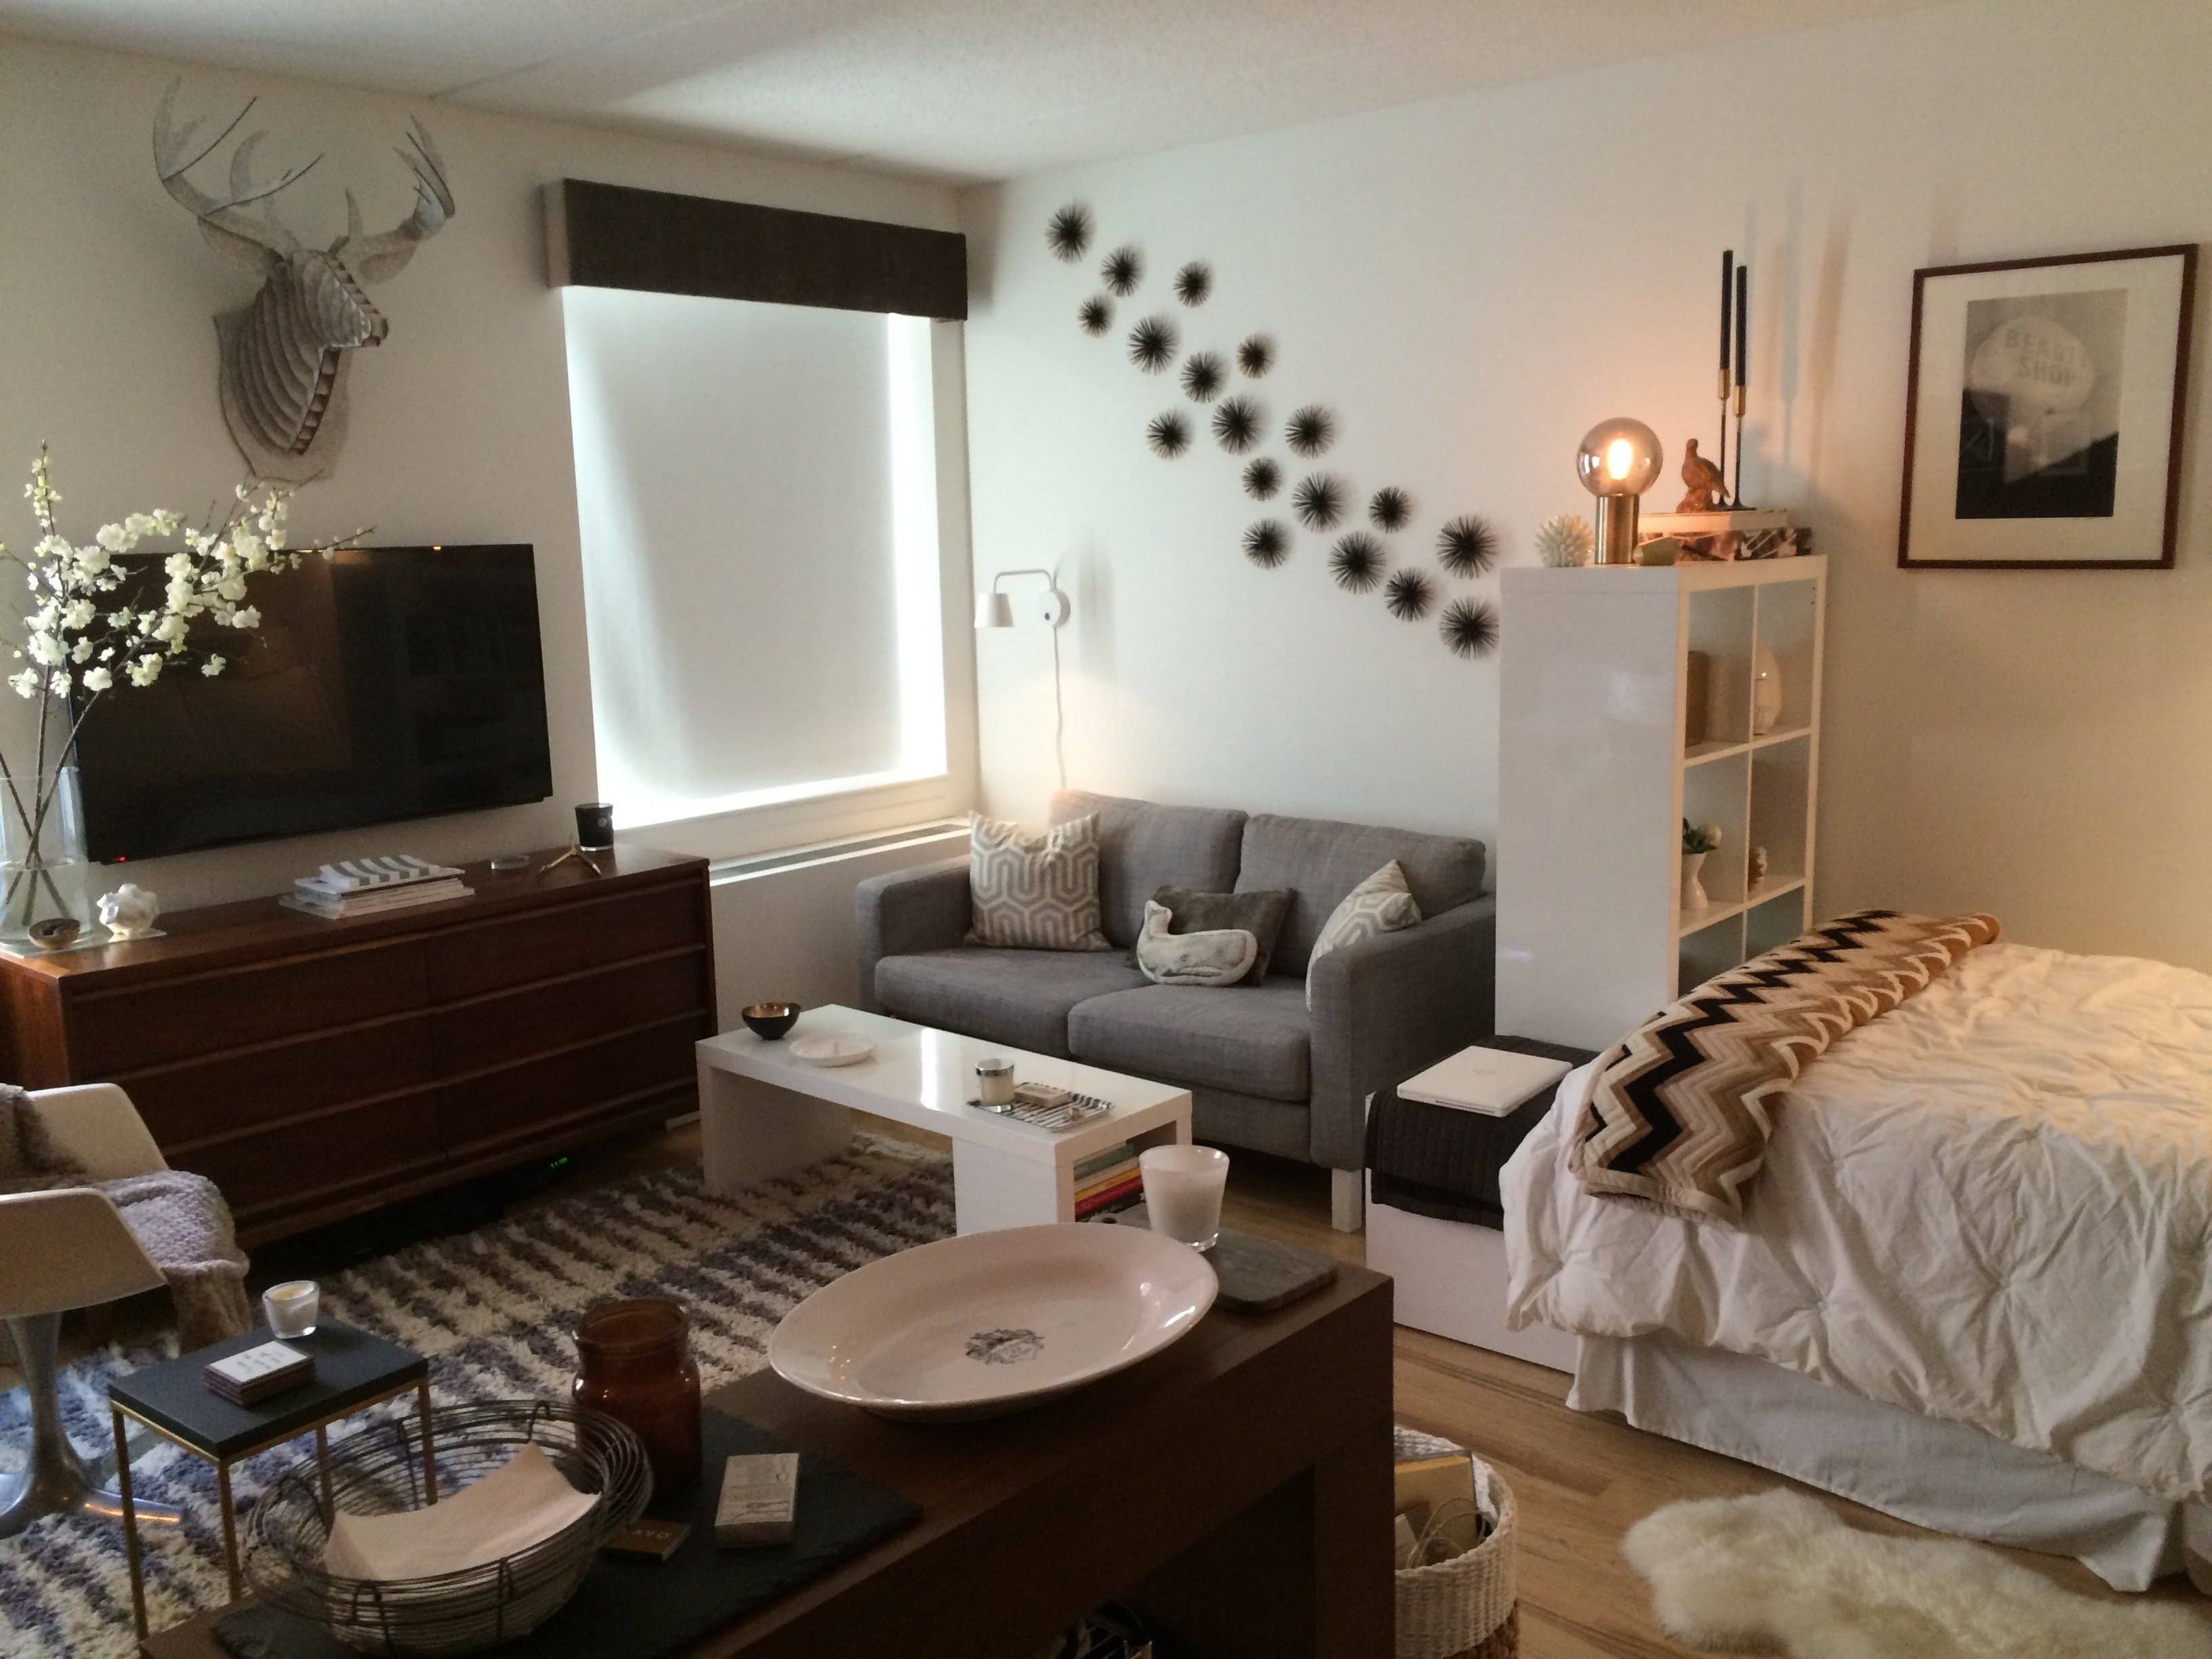 5 Studio Apartment Layouts That Just Plain Work Apartment Layout